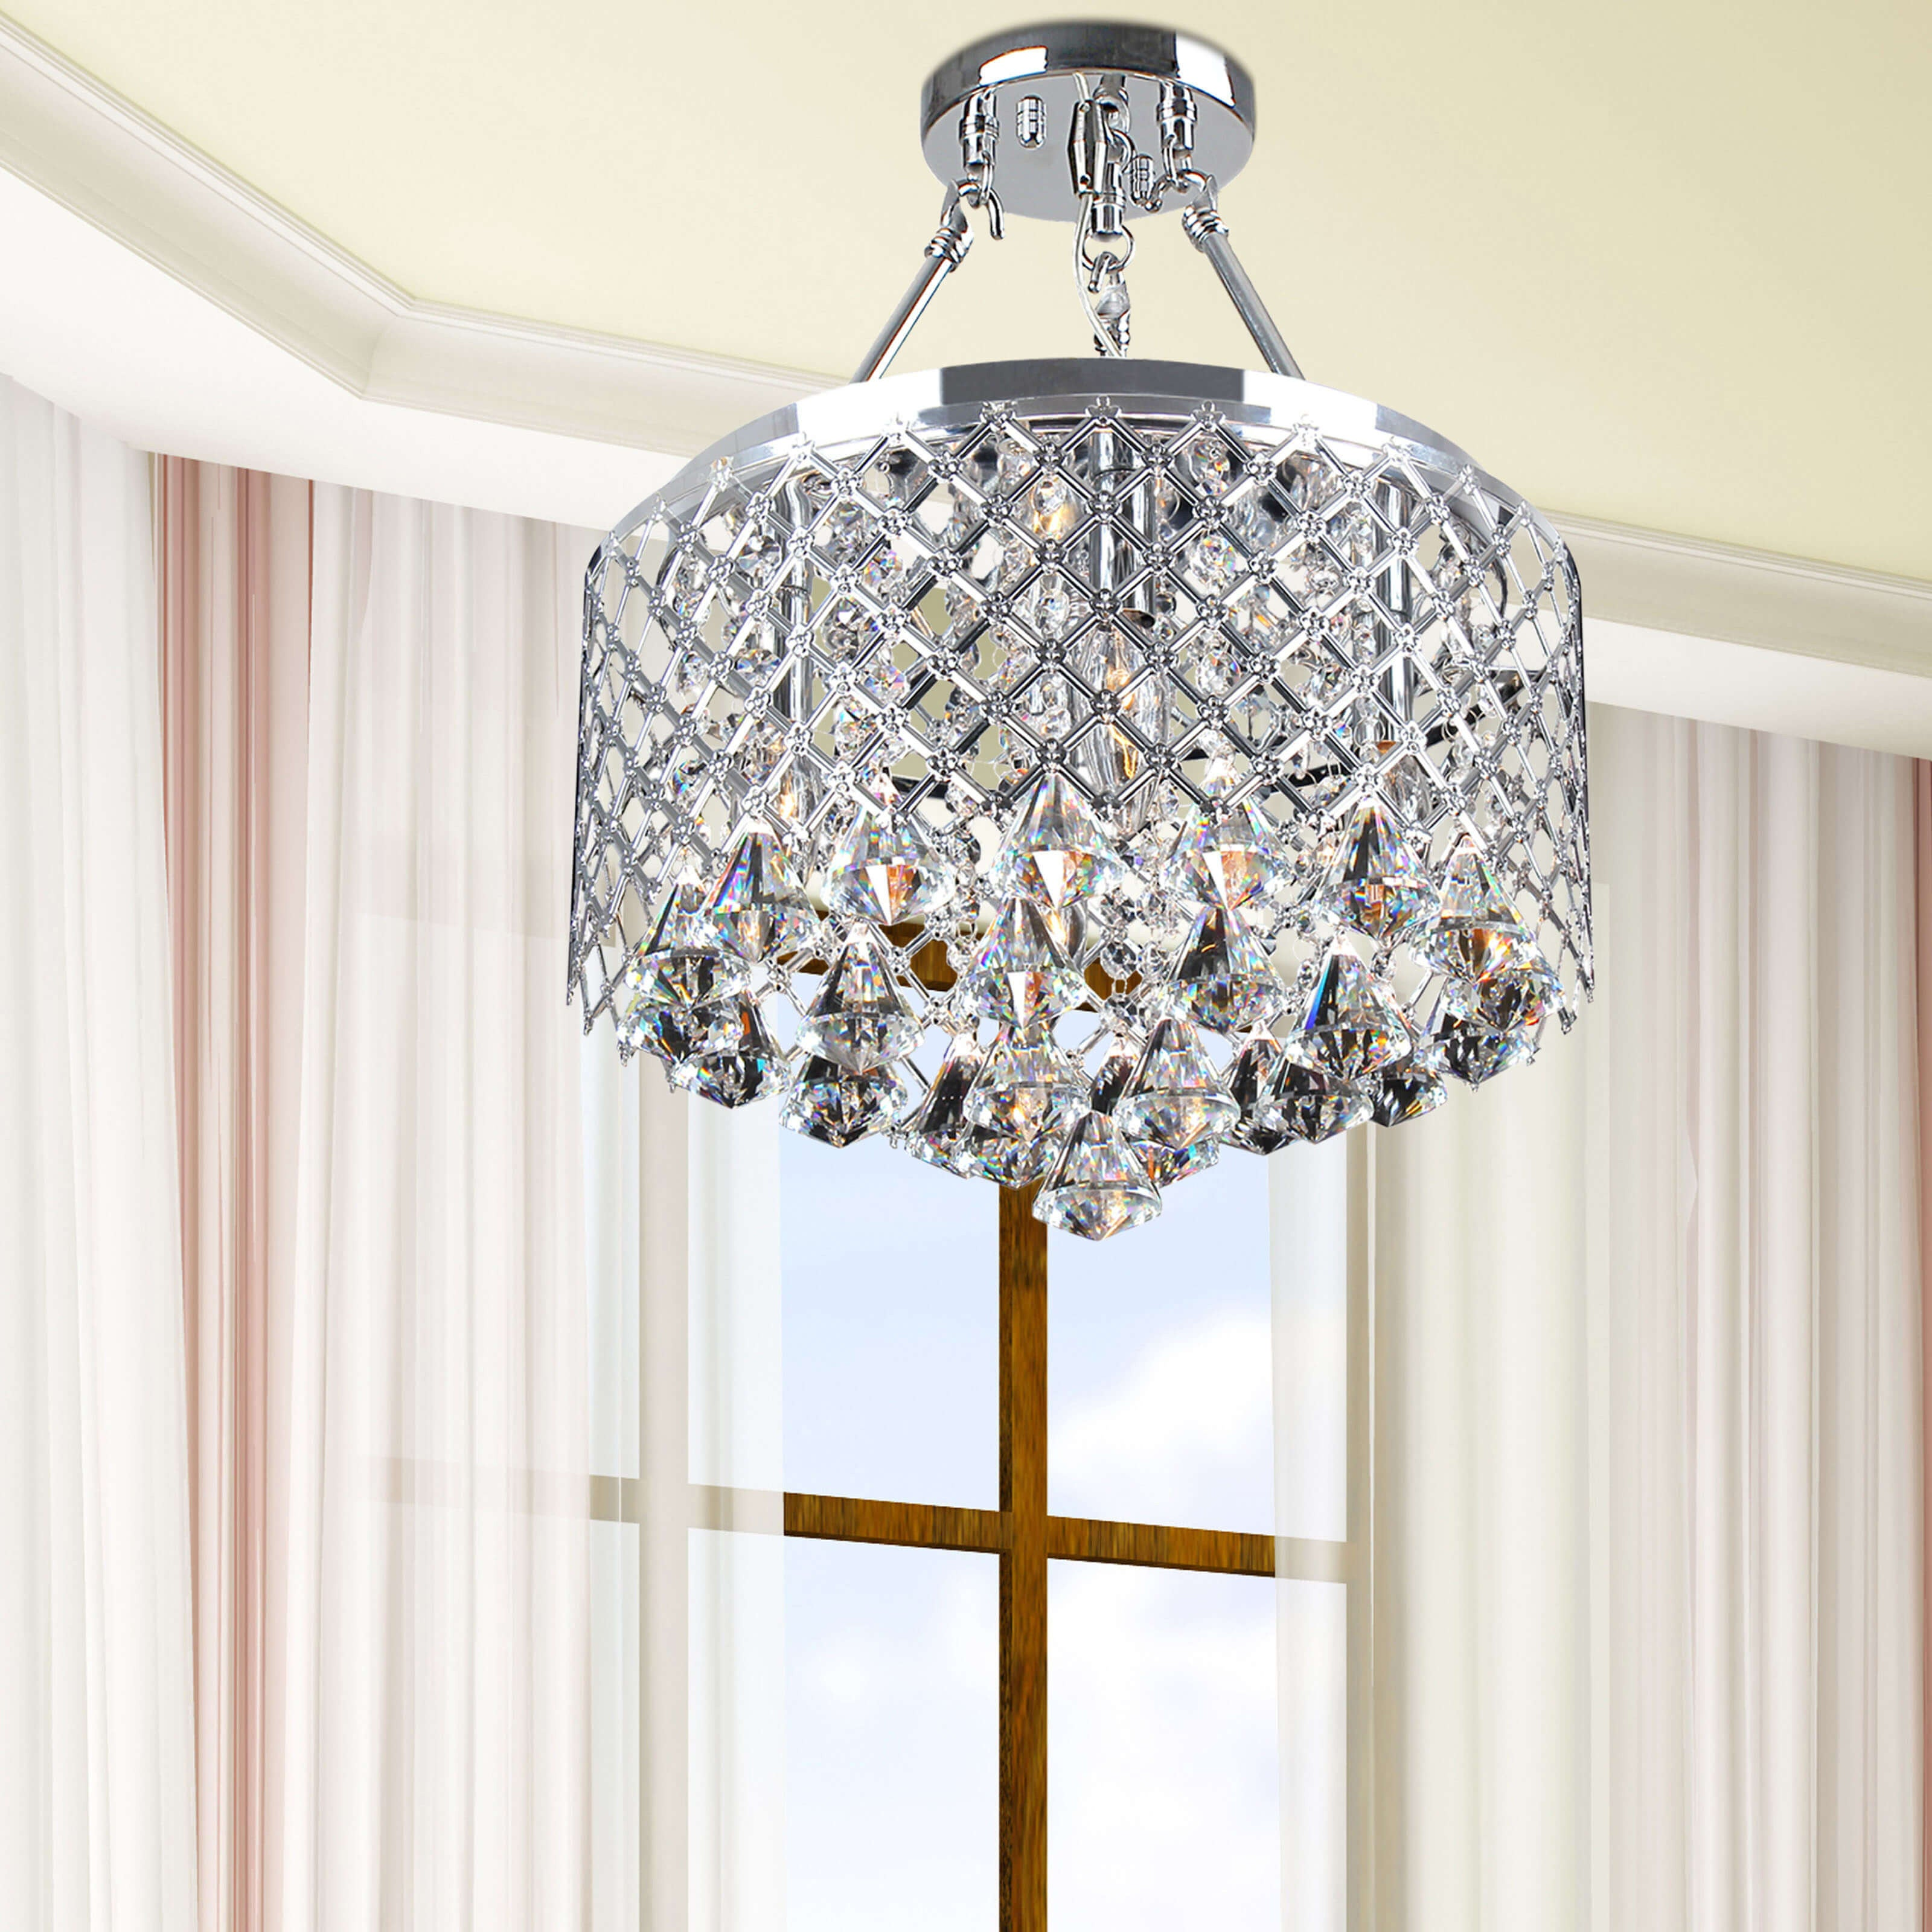 Silver Orchid Leblanc 4 Light Chrome Semi Flush Mount Crystal Chandelier